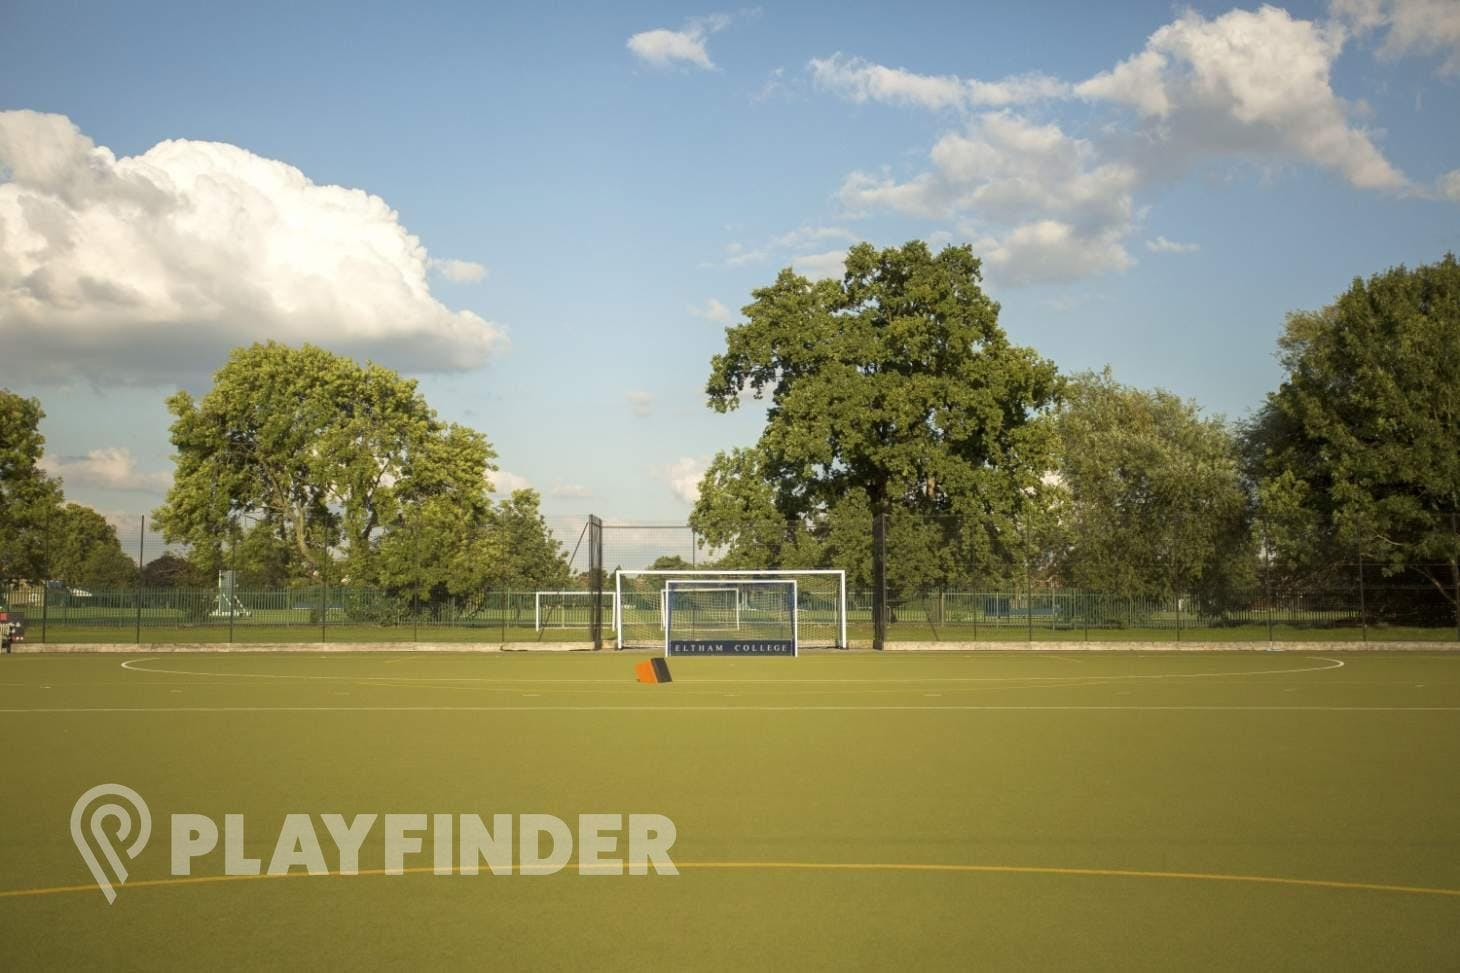 Eric Liddell Sports Centre - Outdoor 7 a side | Astroturf football pitch